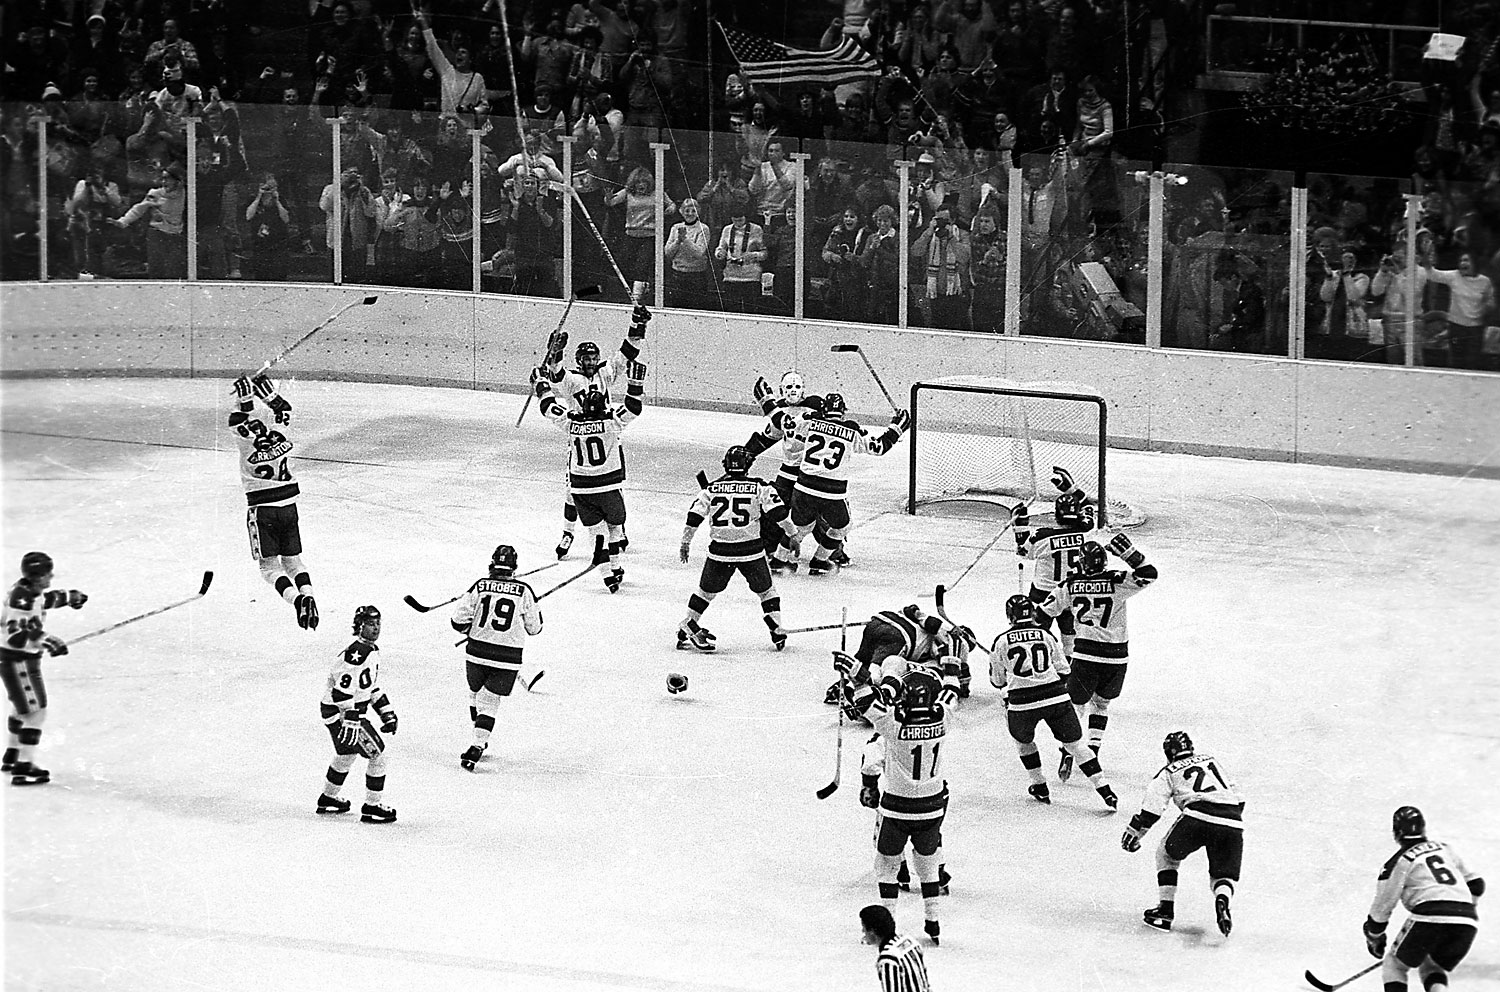 The U.S ice hockey team rushes toward goalie Jim Craig after their upset win over the Soviet Union in the semi-final round of the XIII Winter Olympic Games in Lake Placid, N.Y., Feb. 22, 1980.